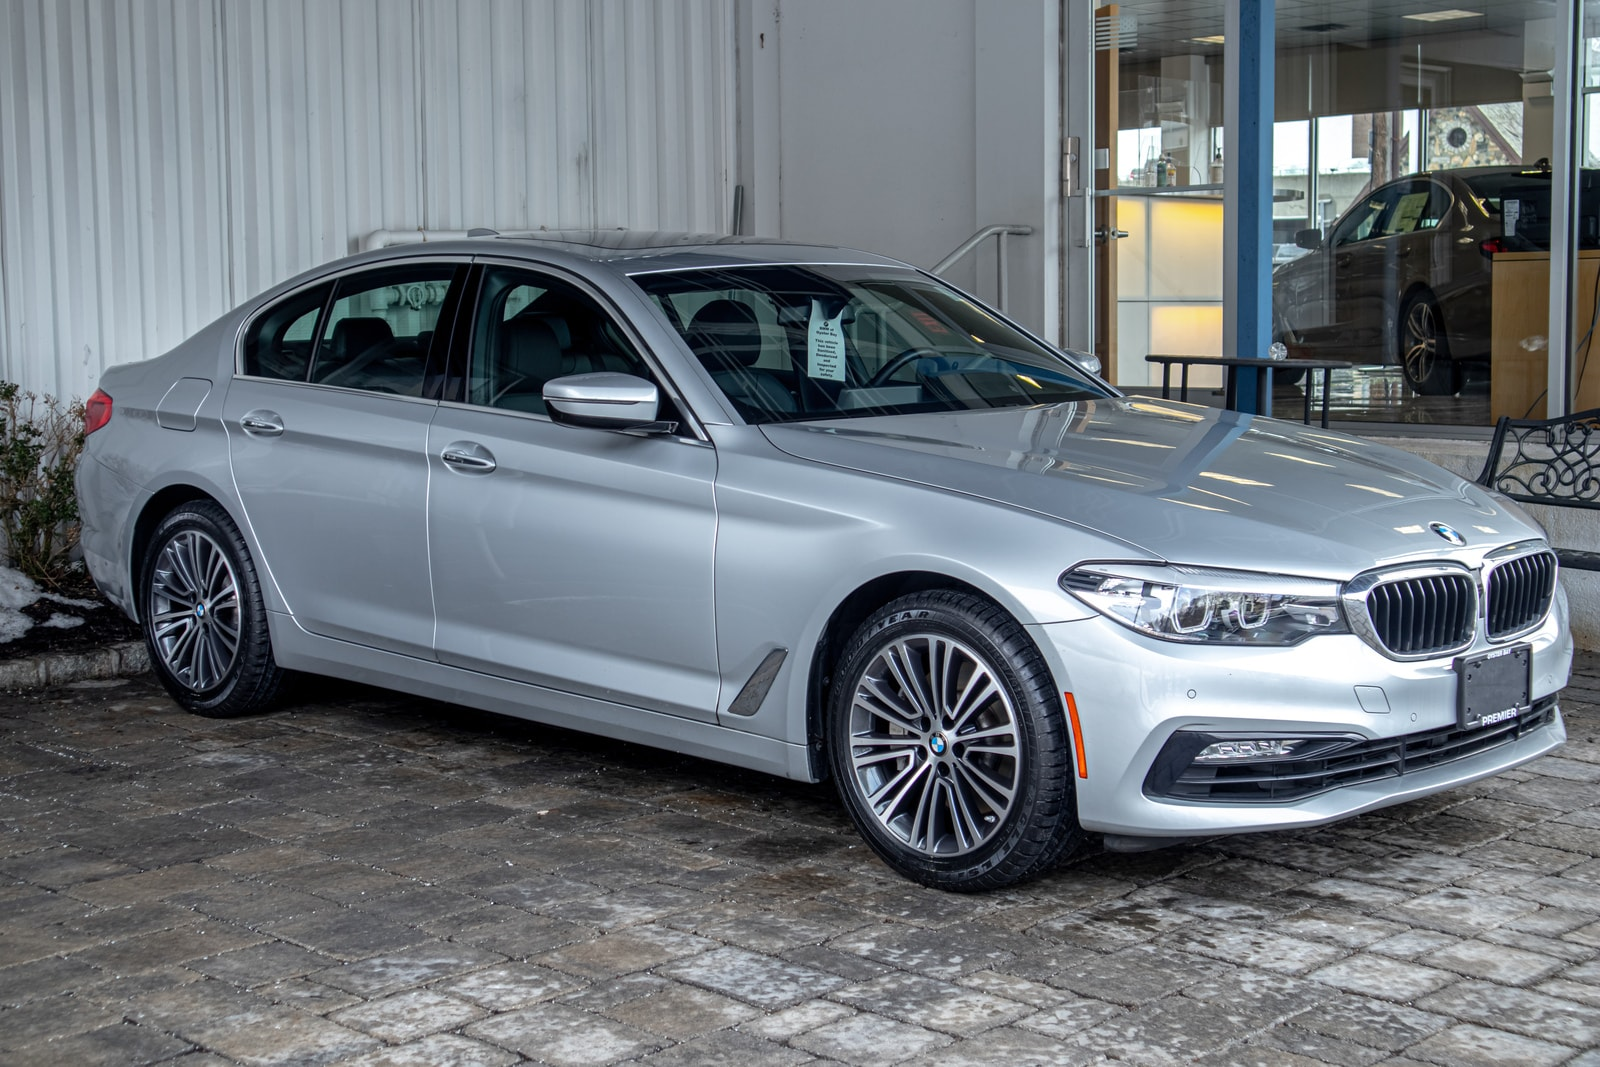 Used Bmw 5 Series Oyster Bay Ny